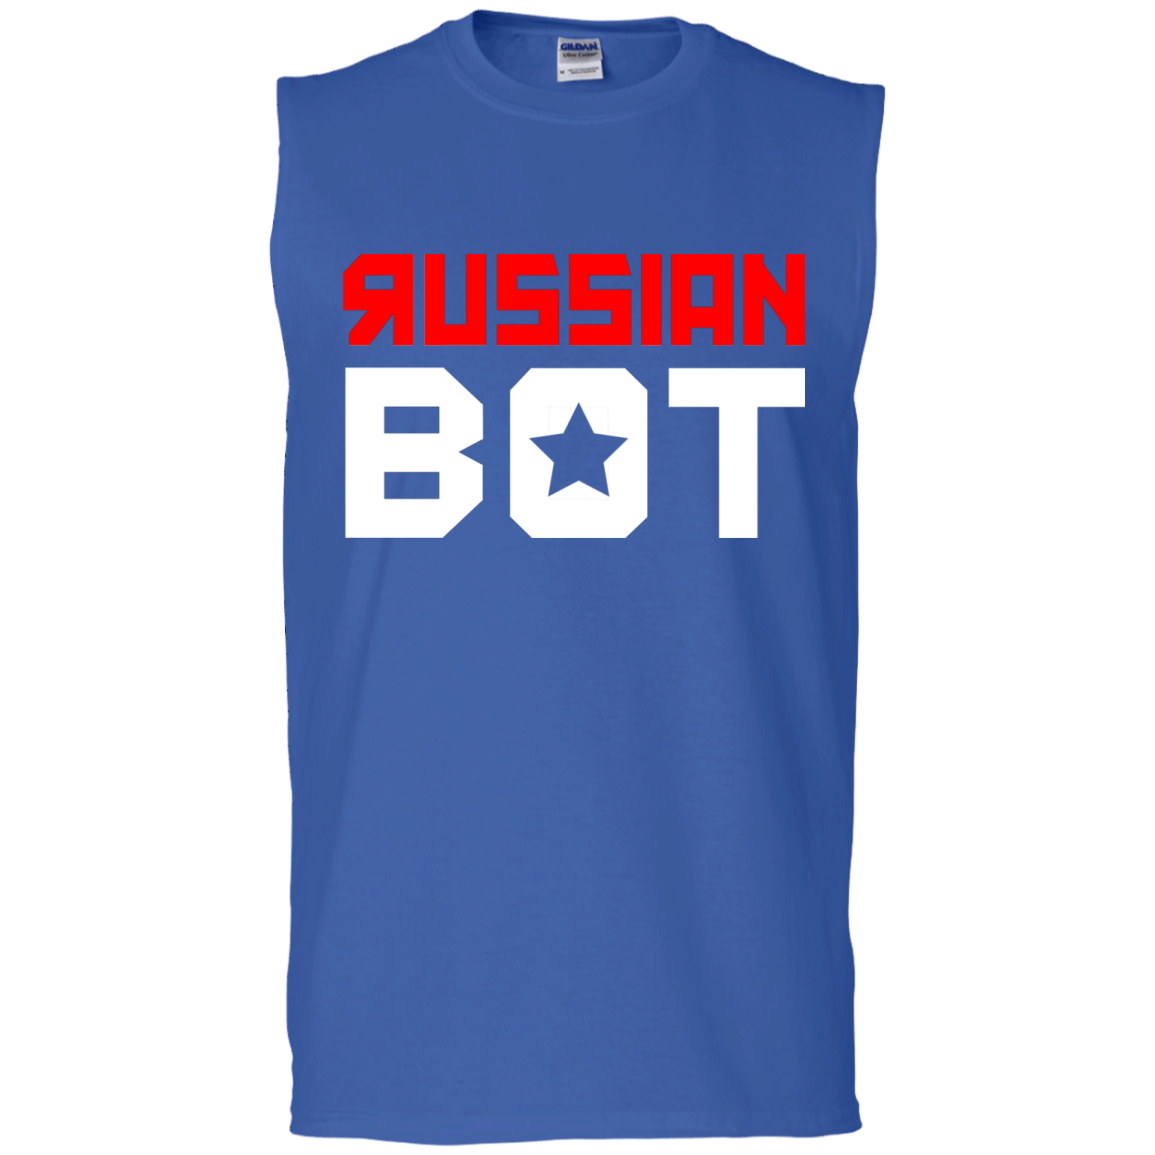 RUSSIAN BOT: Men's Ultra Cotton Sleeveless T-Shirt